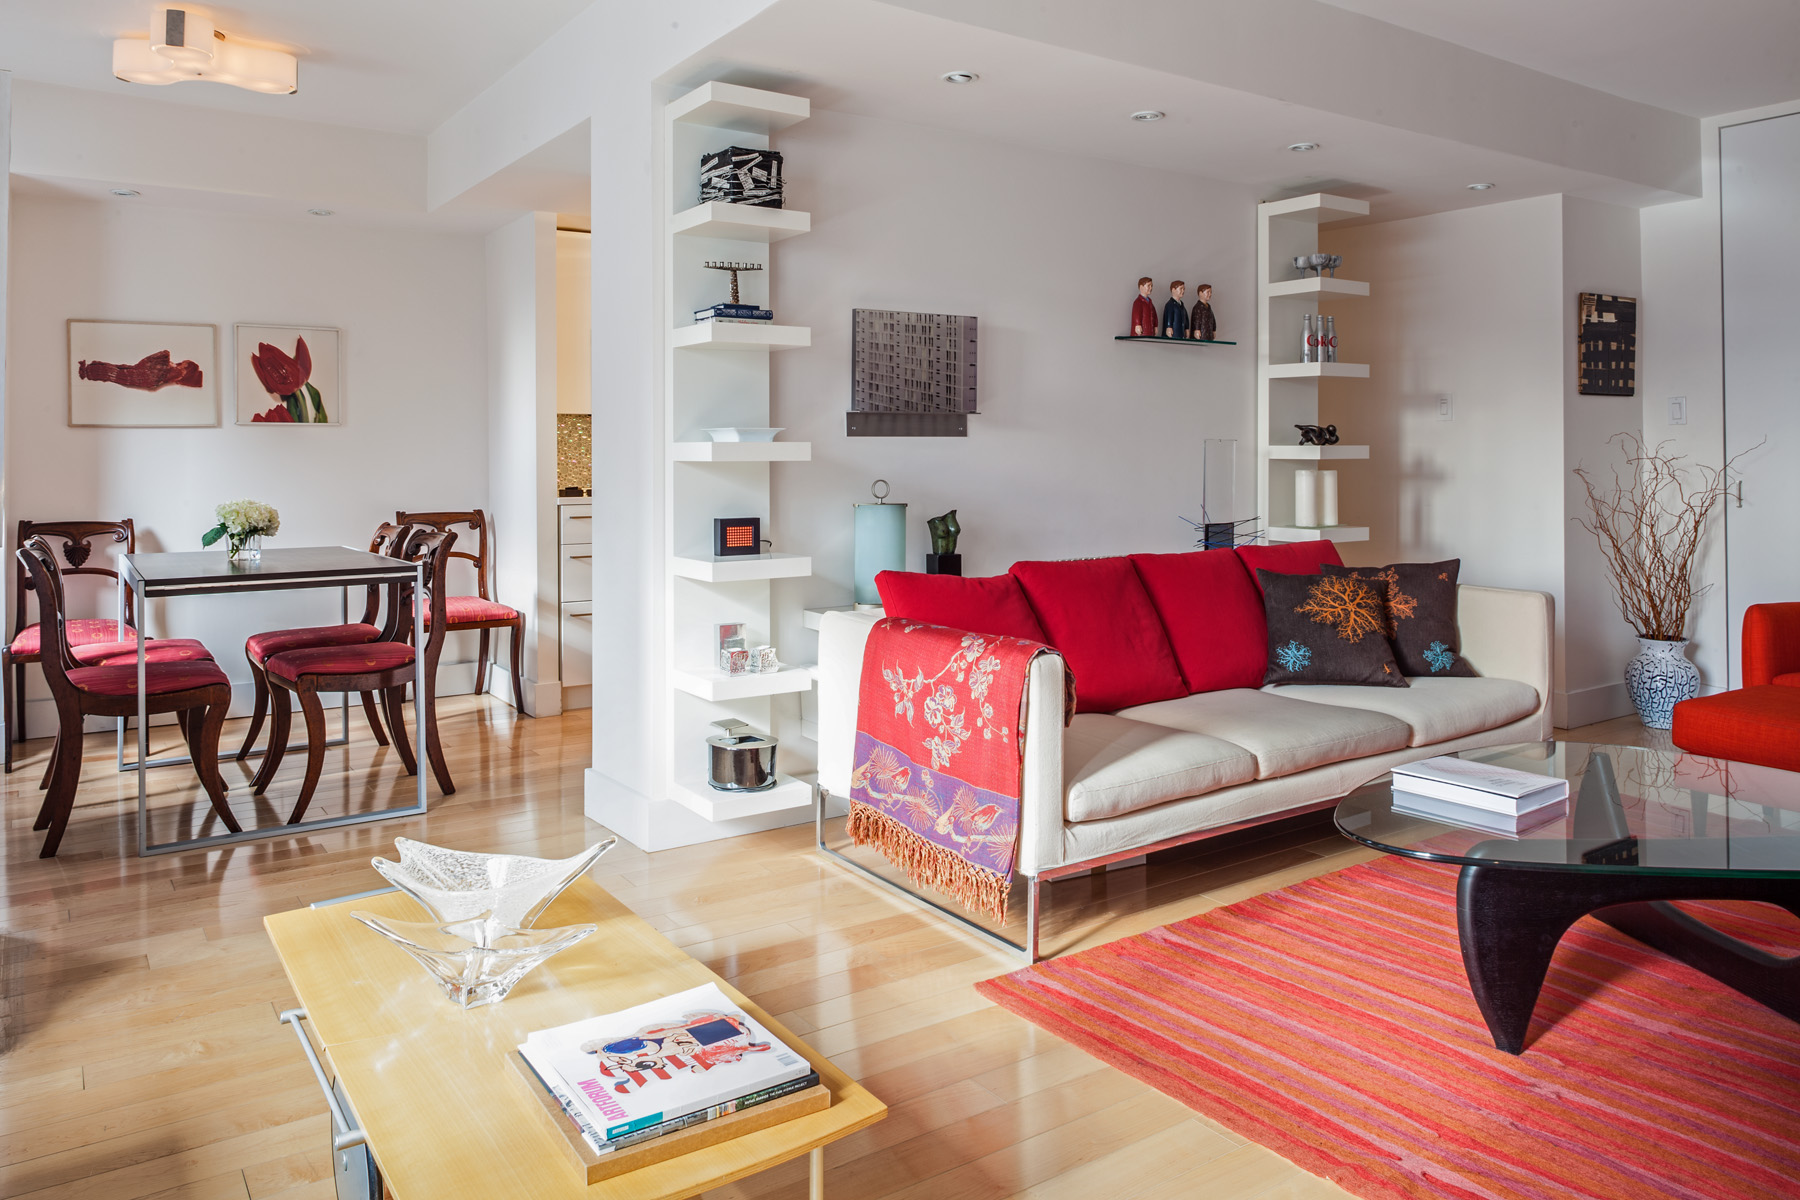 Apartment gut renovation to maximise space